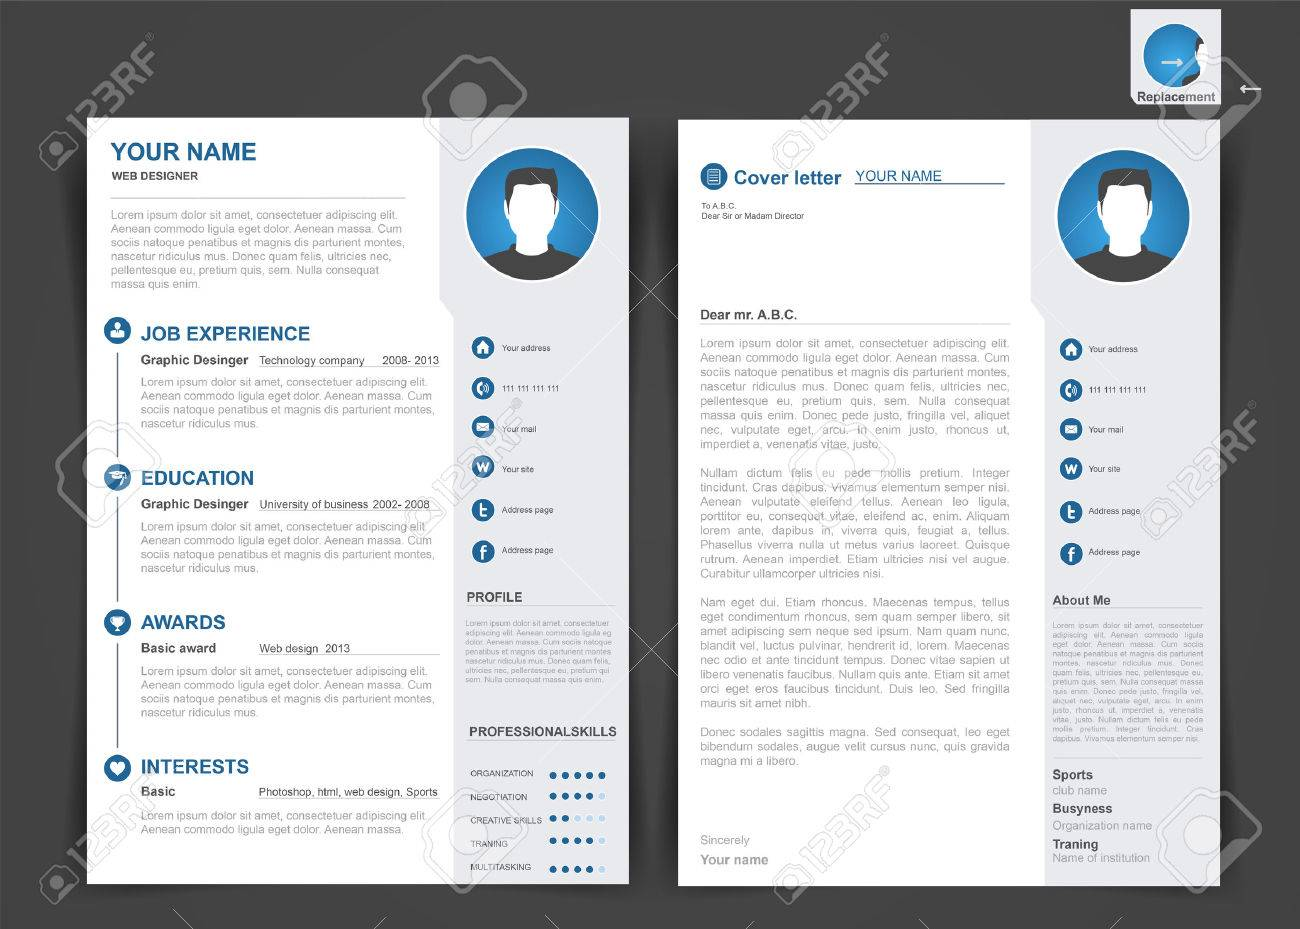 professional cv com professional cv resume template of two pages a size royalty professional cv resume template of two pages a size stock vector